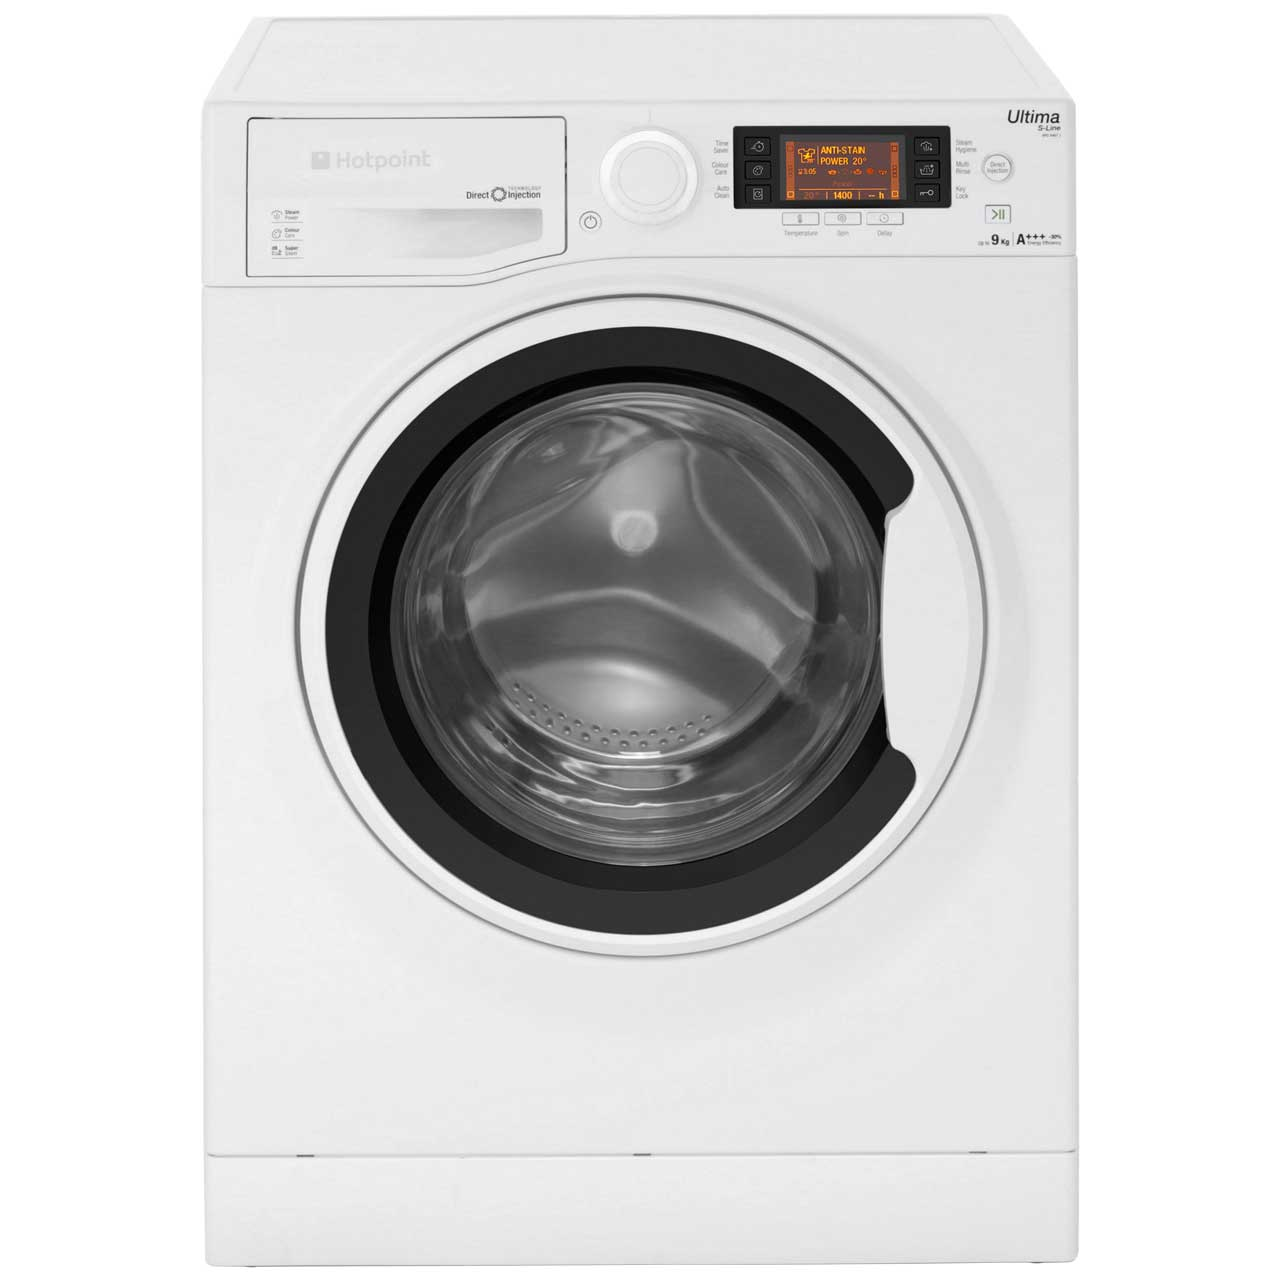 Hotpoint Ultima SLine RPD9467J Free Standing Washing Machine in White